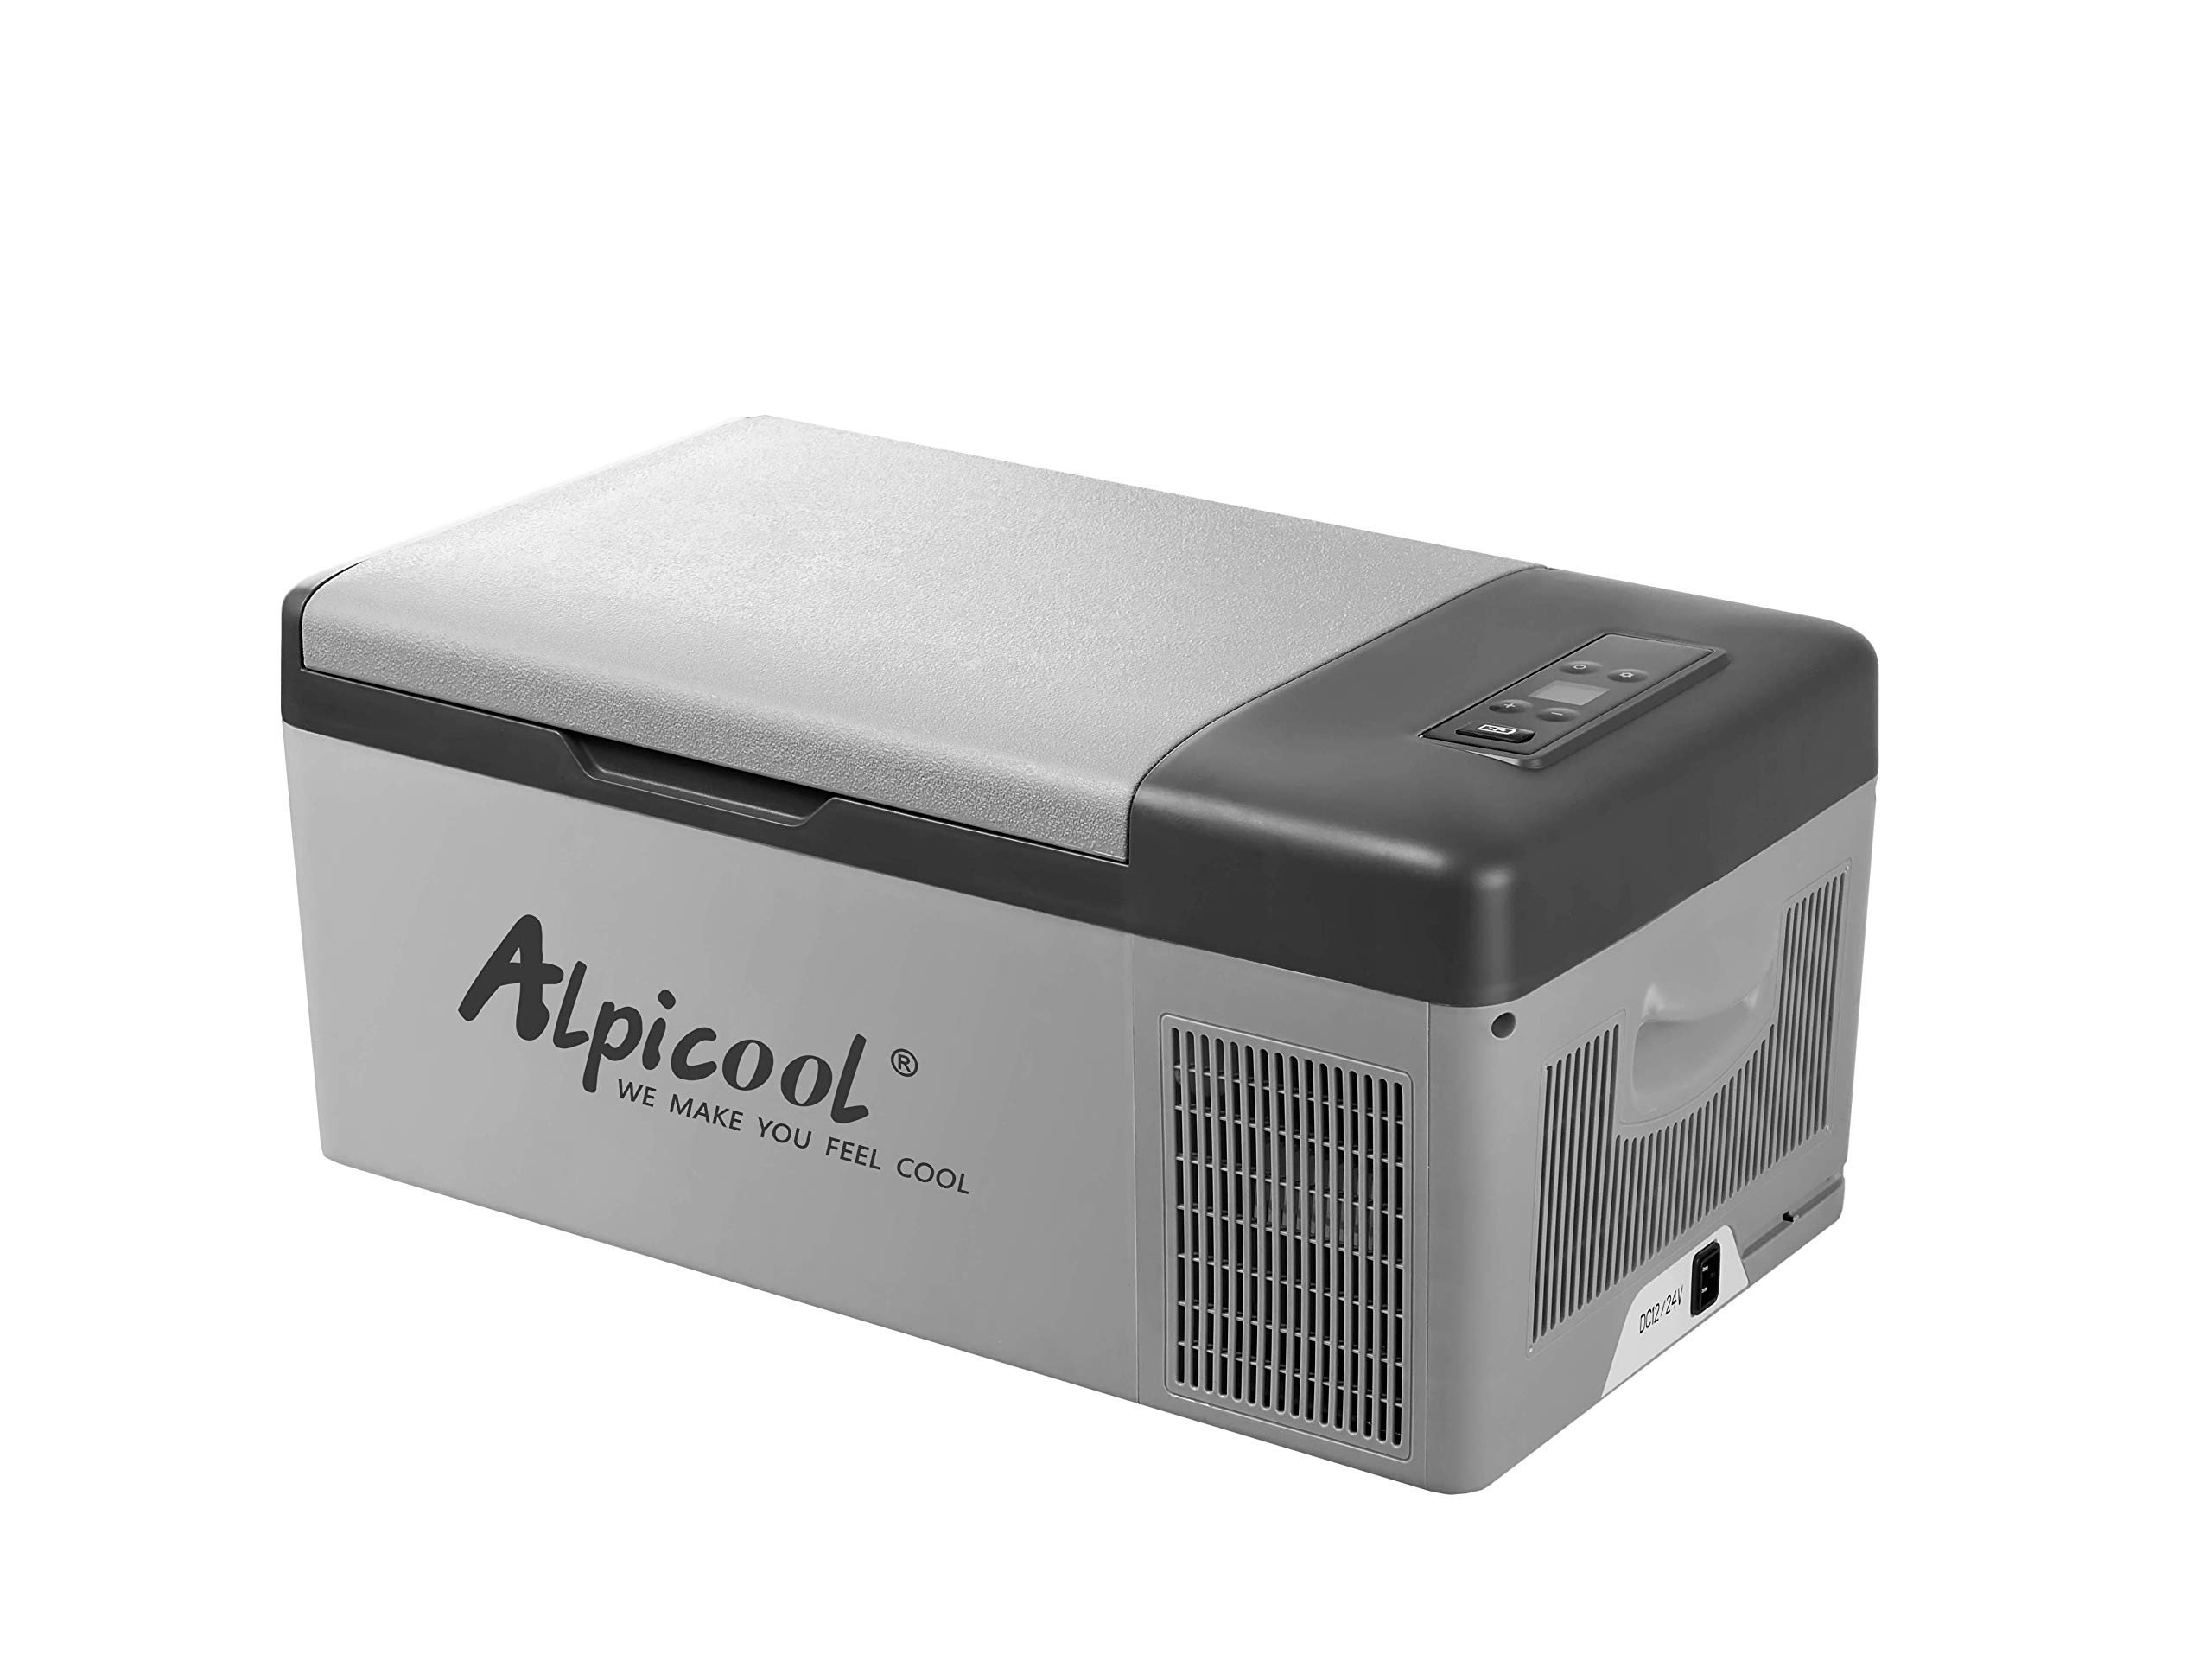 Alpicool C15 Portable Refrigerator 16 Quart(15 Liter) Vehicle, Car, Truck,  RV, Boat, Mini fridge freezer for Driving, Travel, Fishing, Outdoor and